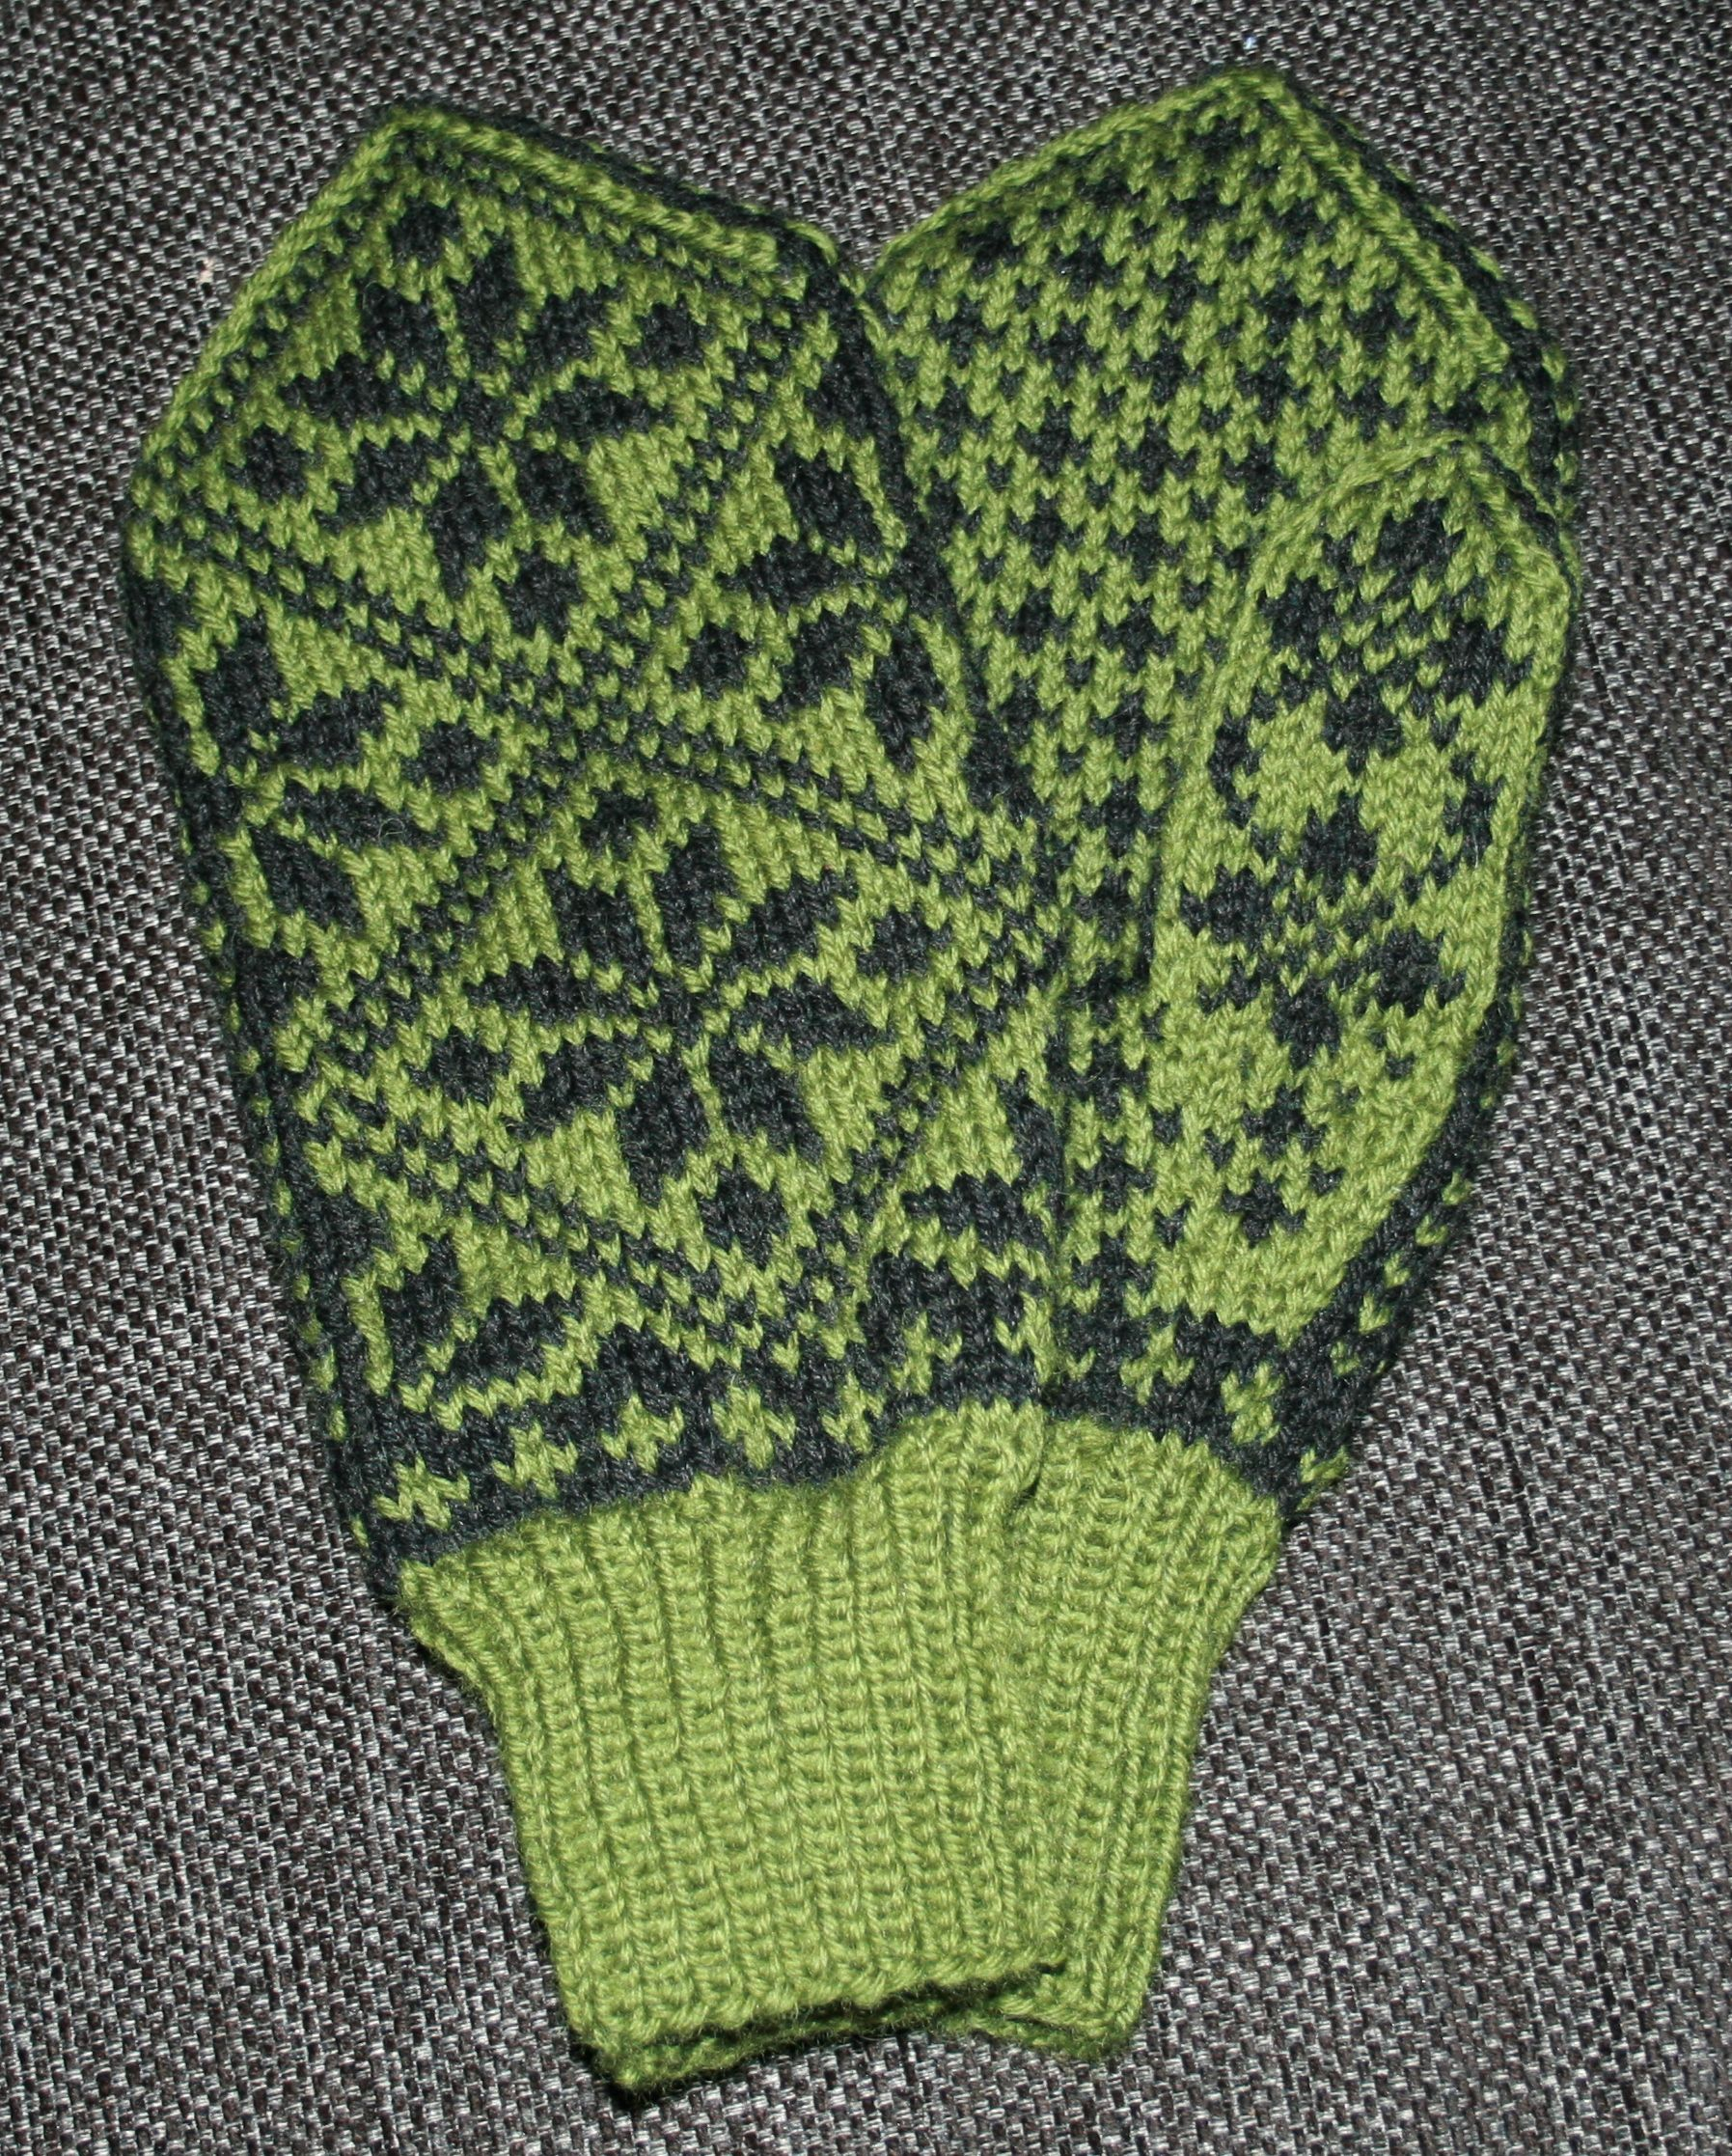 Mittens pattern from thuve stua mittens pinterest mittens mittens pattern from thuve stua bankloansurffo Choice Image